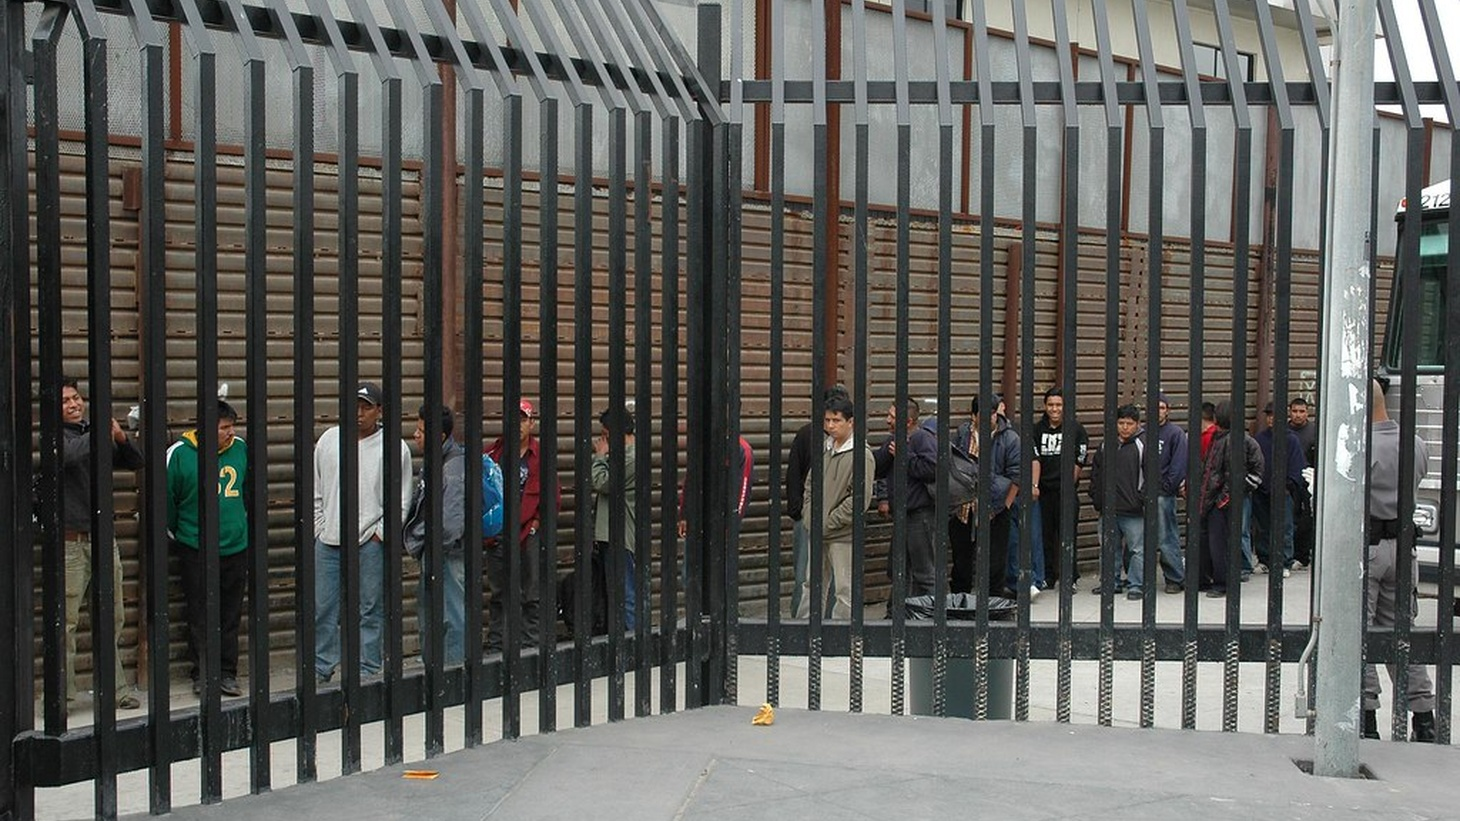 Looking outside a detention center